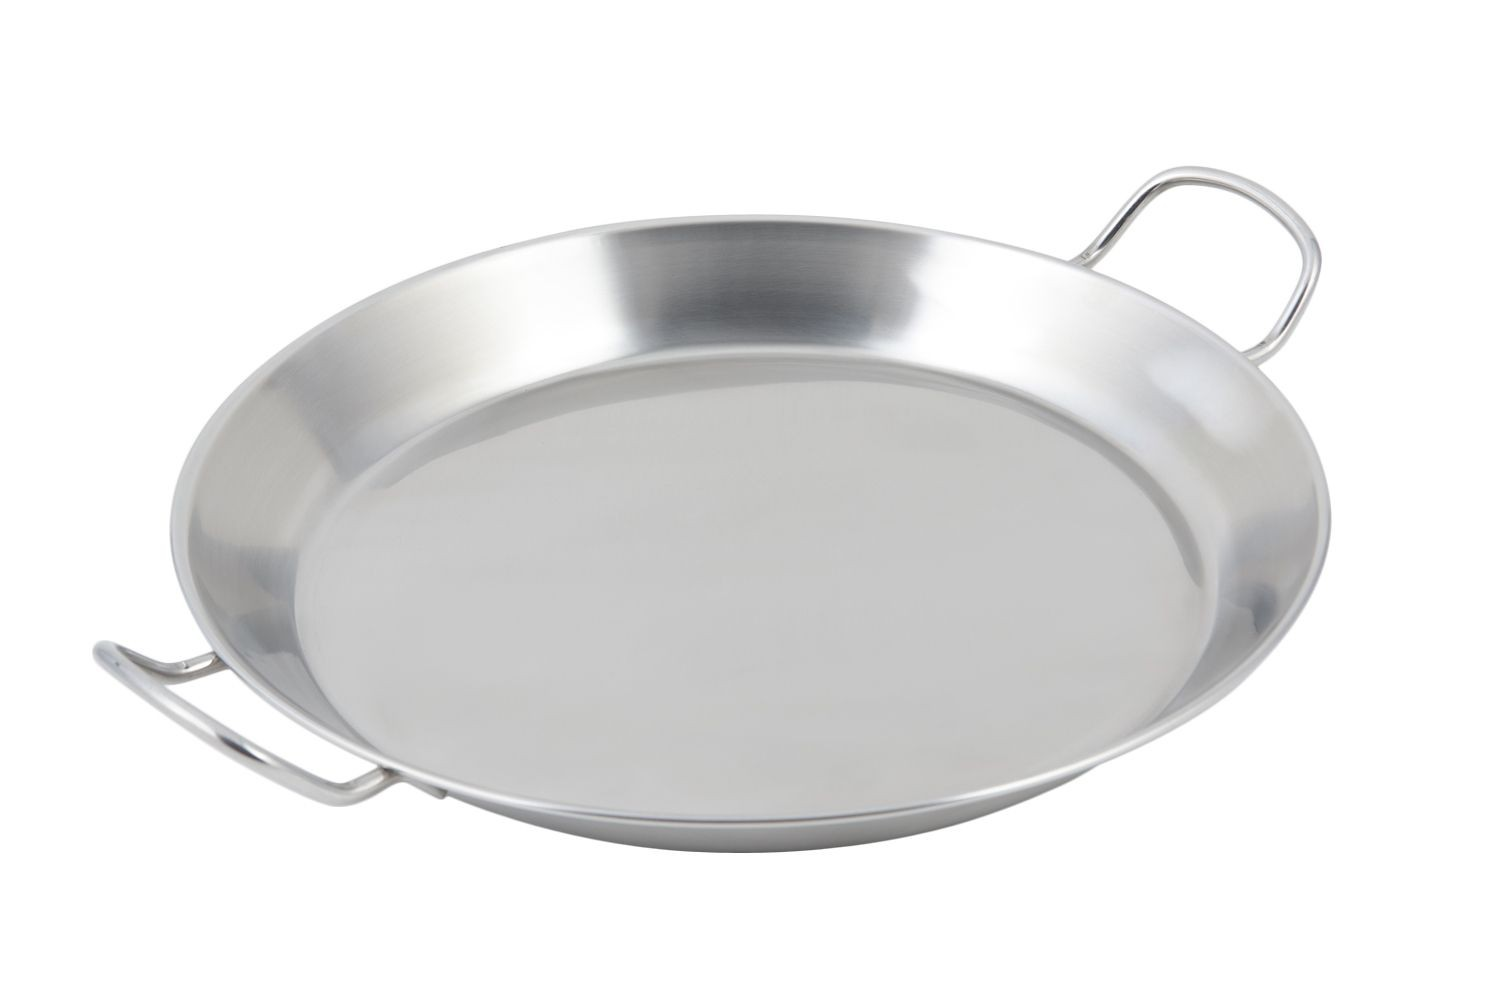 "Bon Chef 61249 Stainless Steel Paella Tray with Induction Bottom, 14 4/5"" Dia."